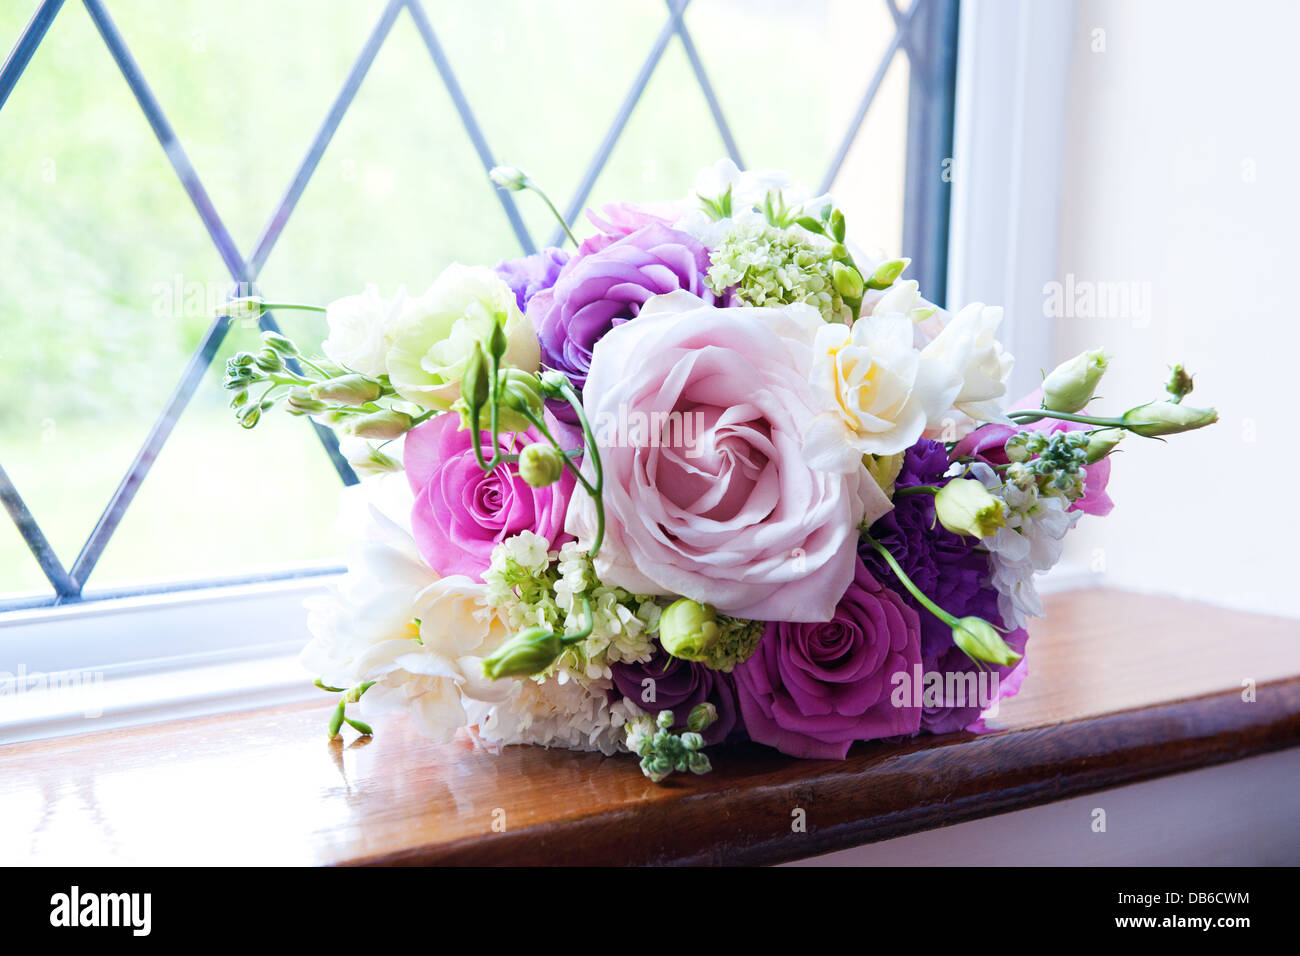 Vibrant purple pink white and pastel pink rose wedding flower vibrant purple pink white and pastel pink rose wedding flower bouquet on a wooden windowsill backlit izmirmasajfo Images